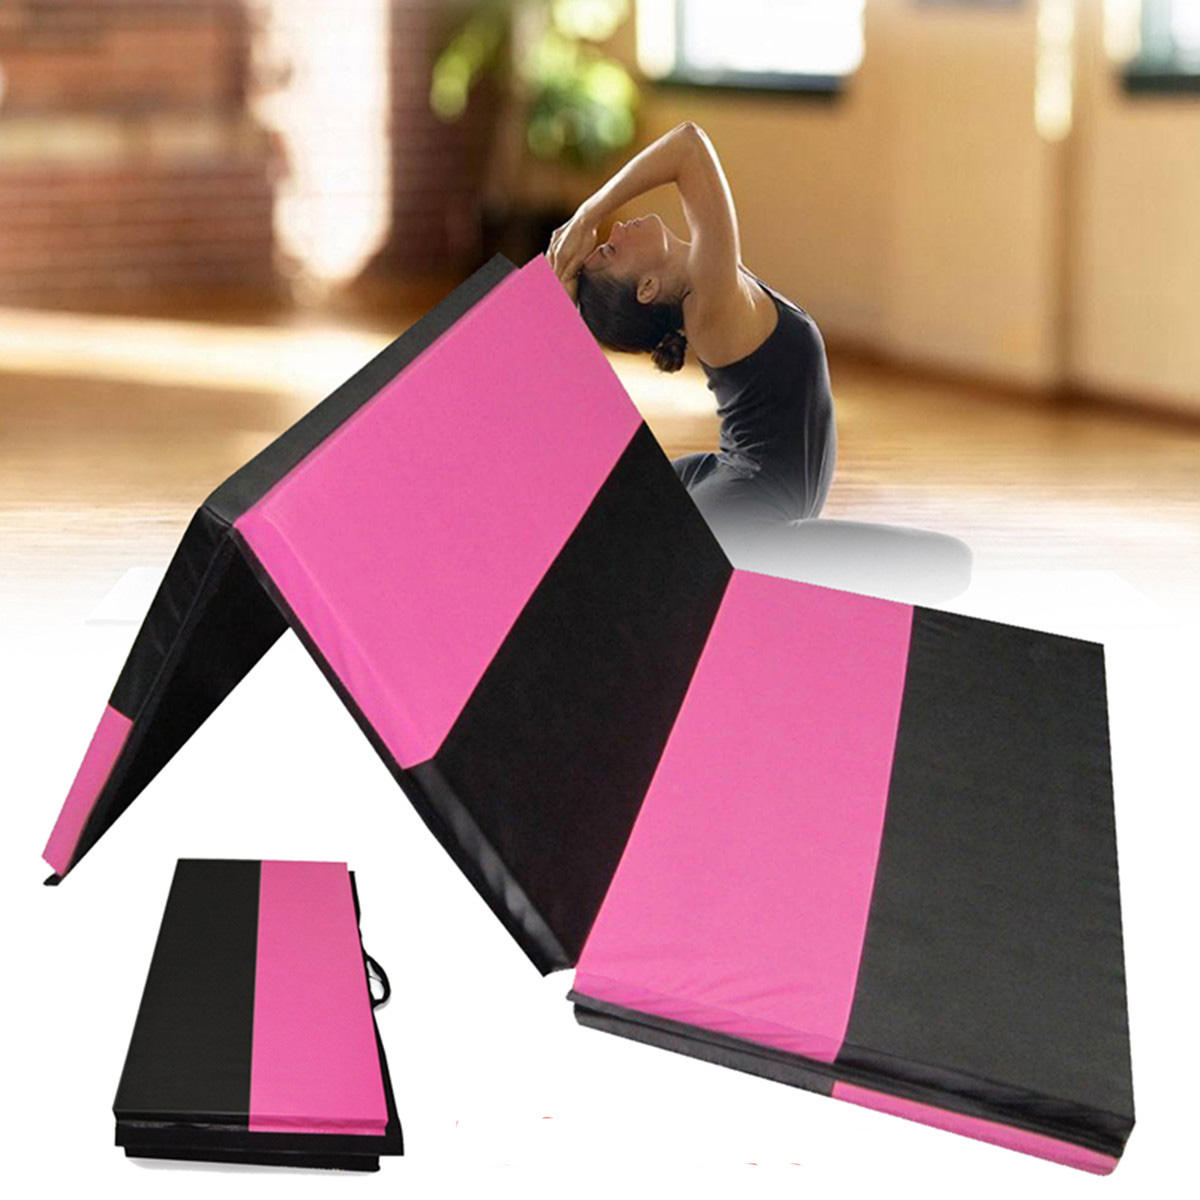 70x47x1.97inch Foldable Gymnastic Mat Exercise Yoga Fitness Workout Tumbling Pad